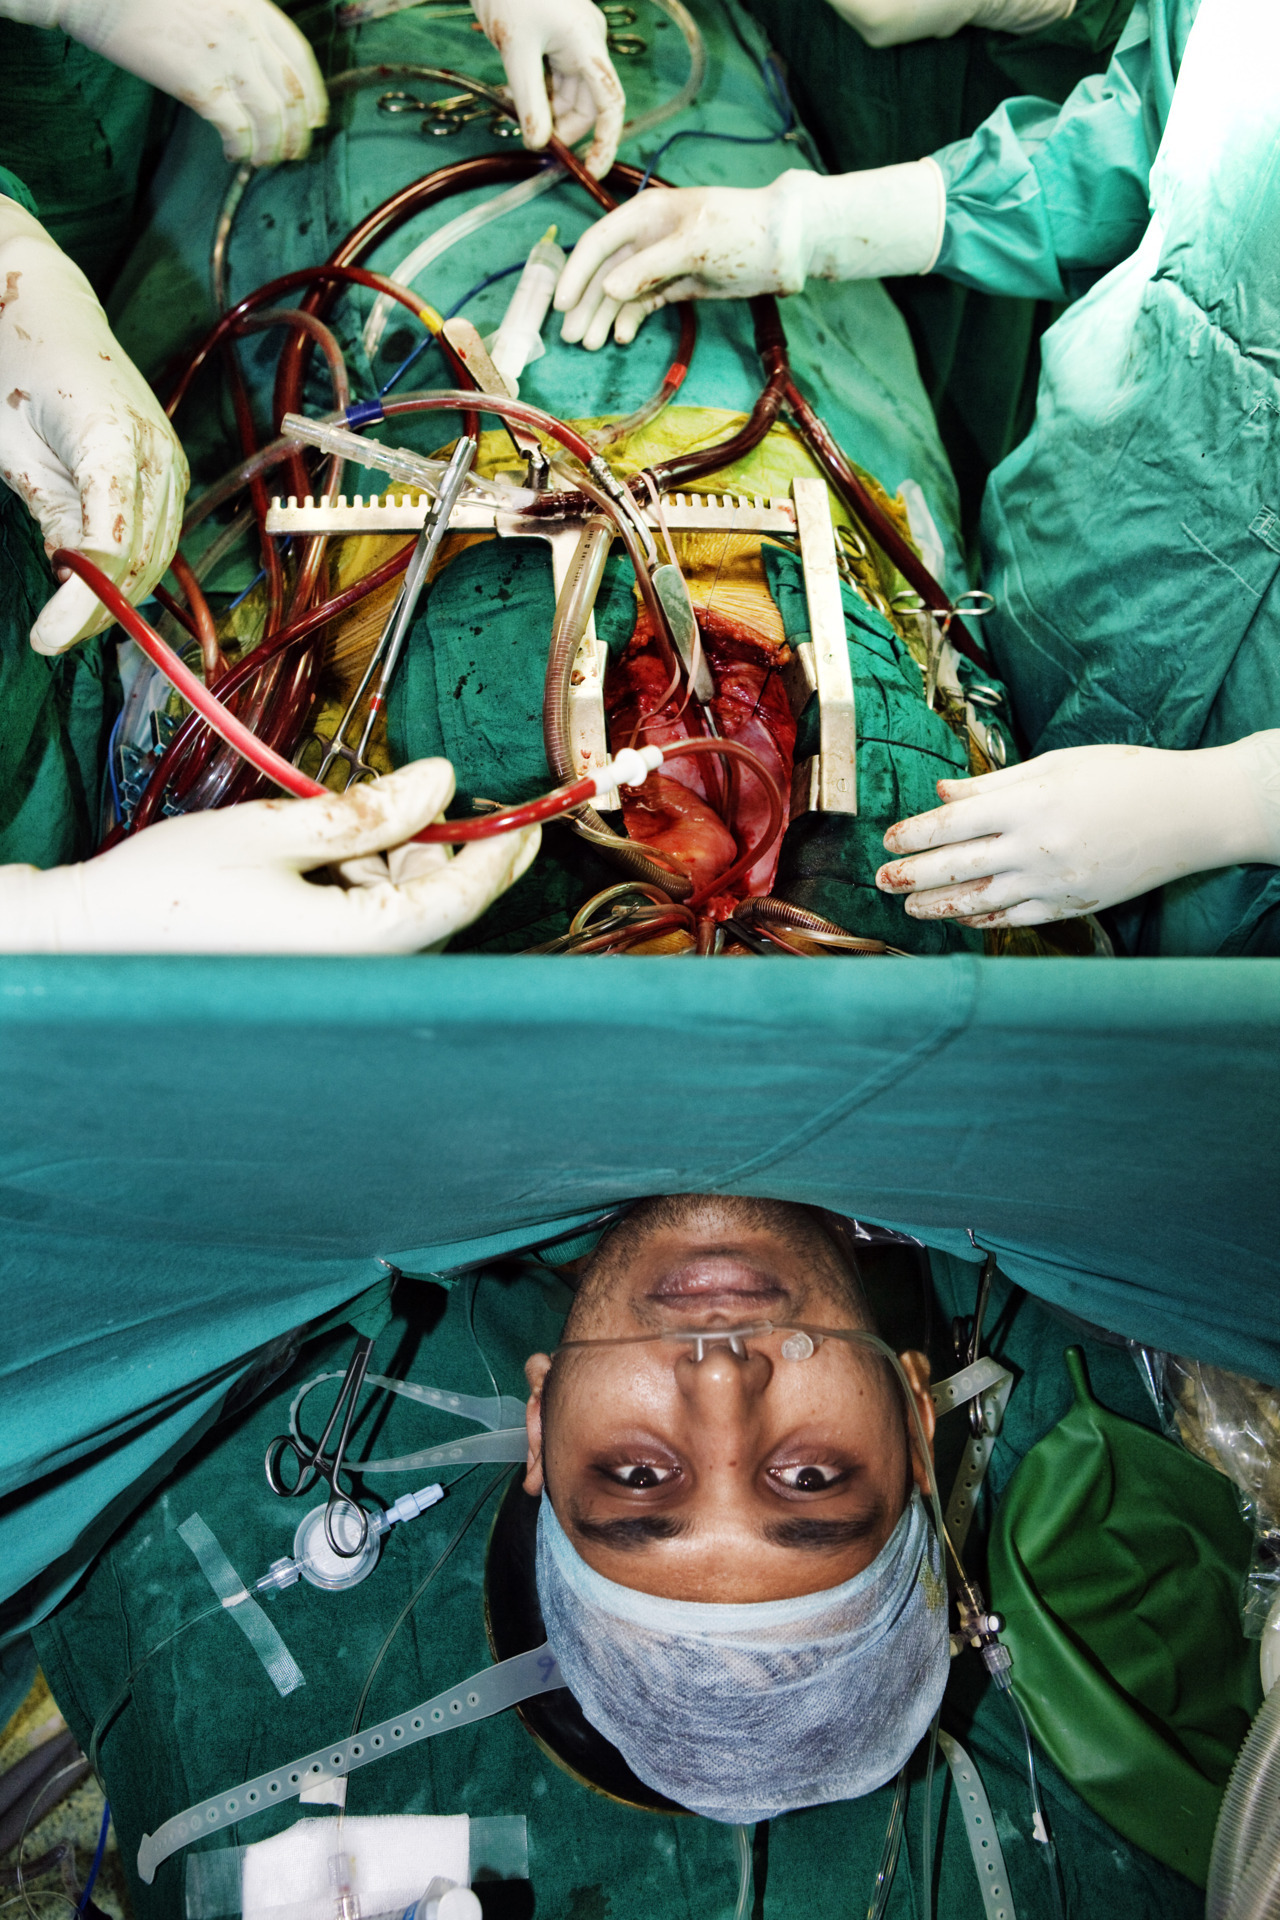 wonderfulmachine:  Surgery. Photo by Tom Parker/United Kingdom. Image selected for the Renaissance Photography Award show.